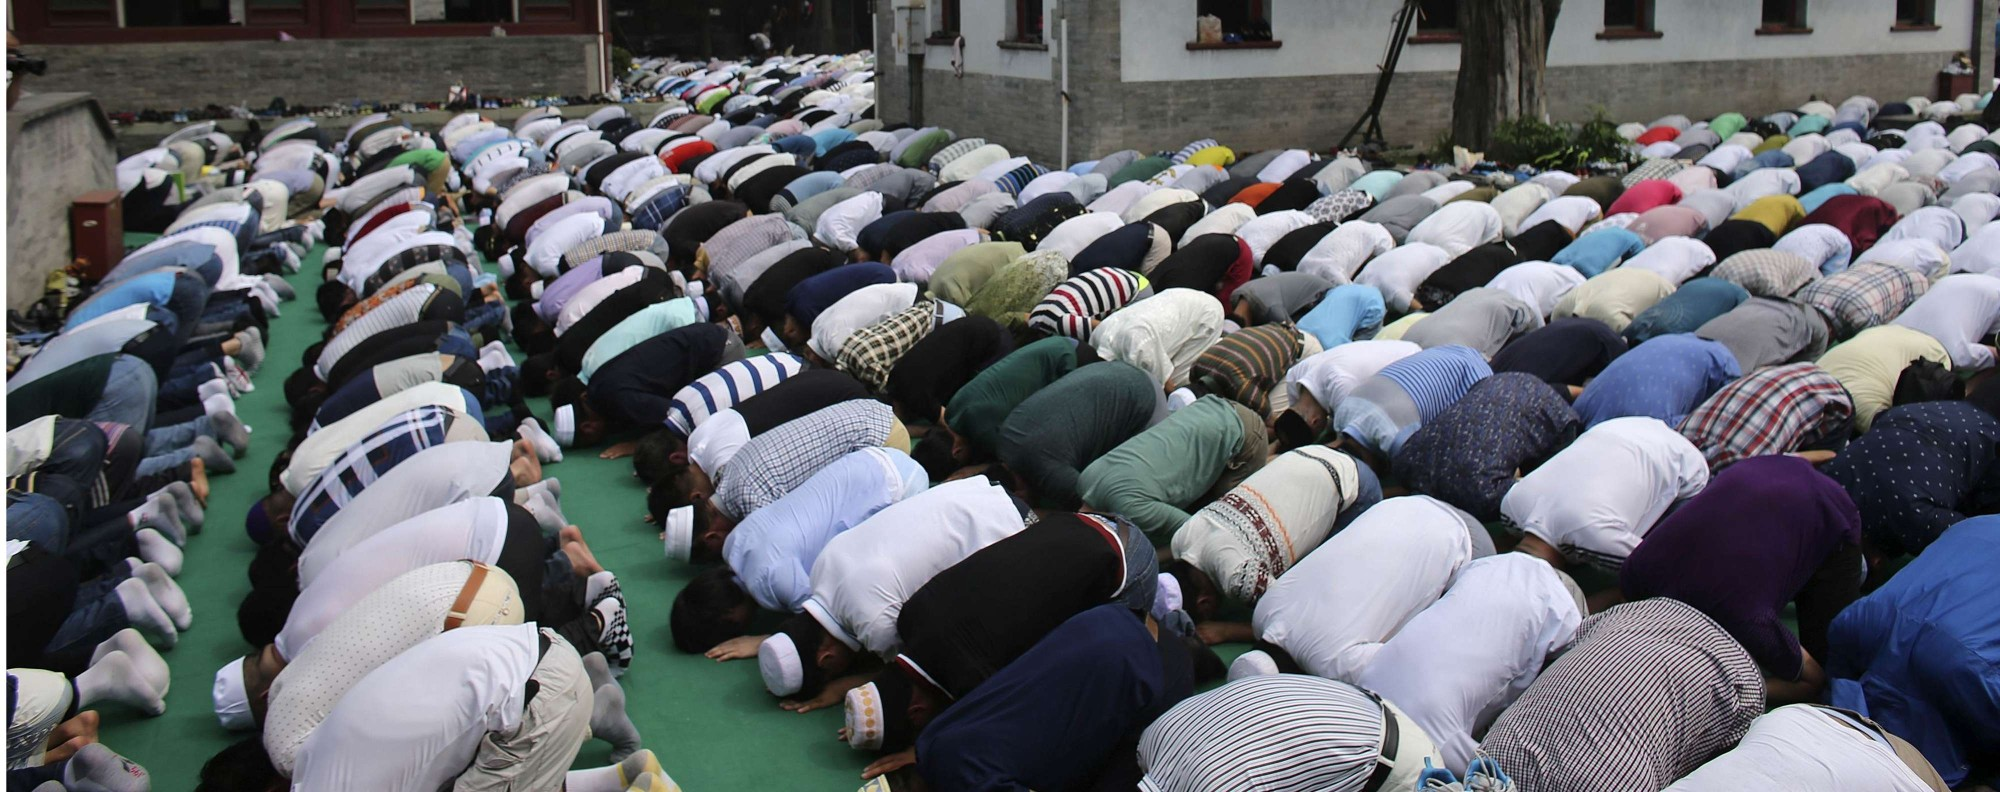 Muslims pray during Eid ul-Fitr in Beijing. Photo: Reuters